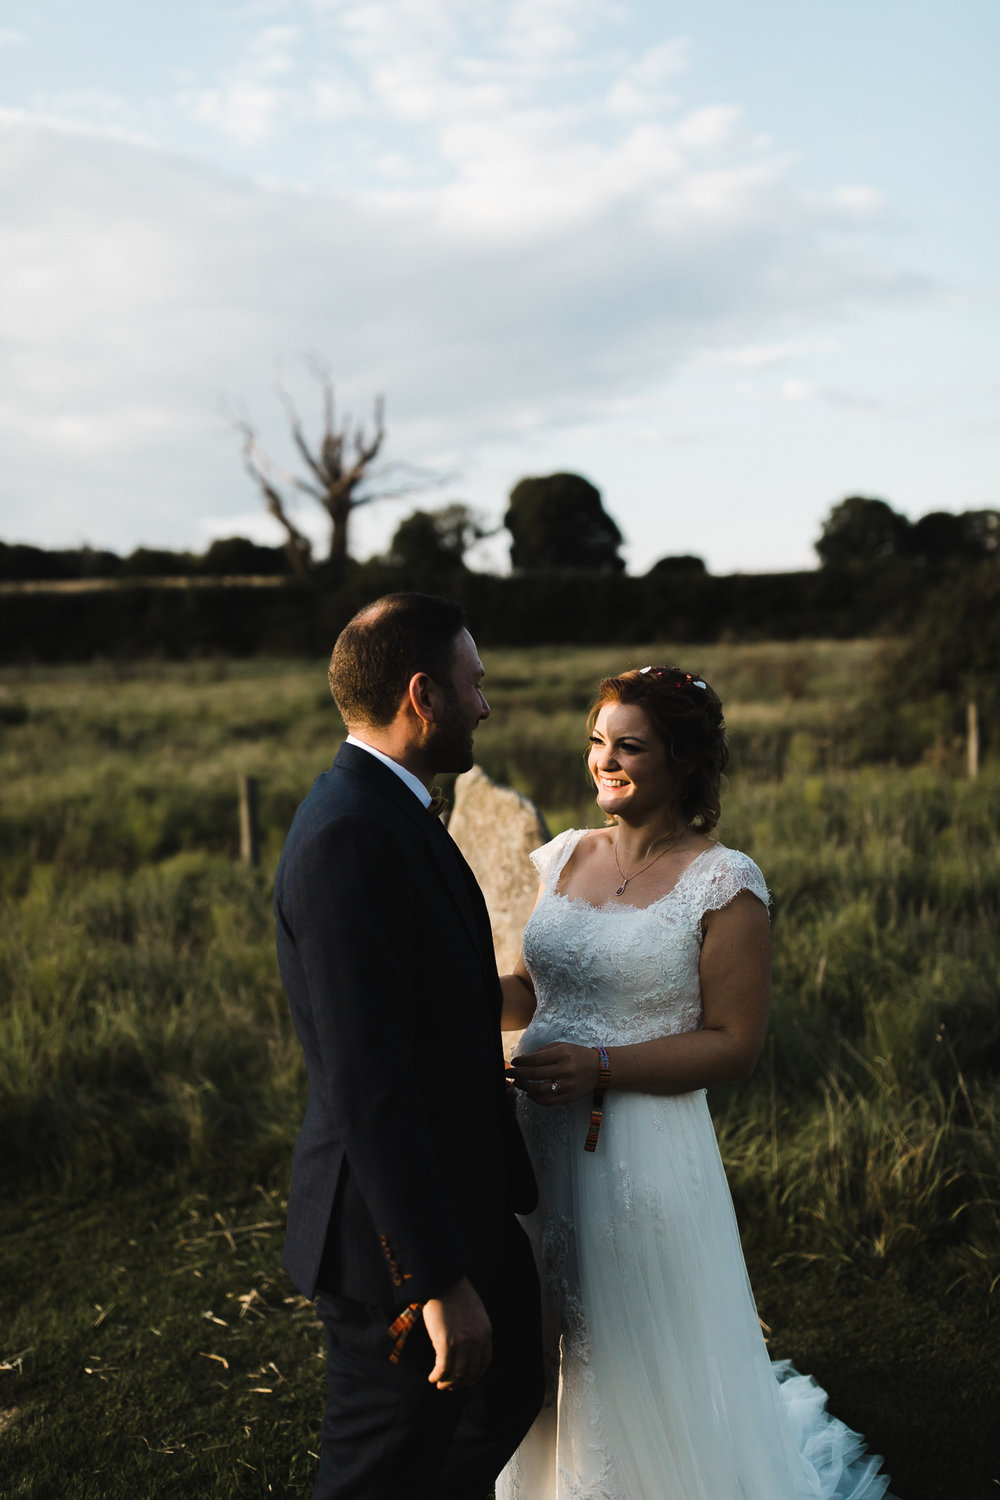 Festival_Wedding_High_Billinghurst_Farm_Surrey_091.jpg